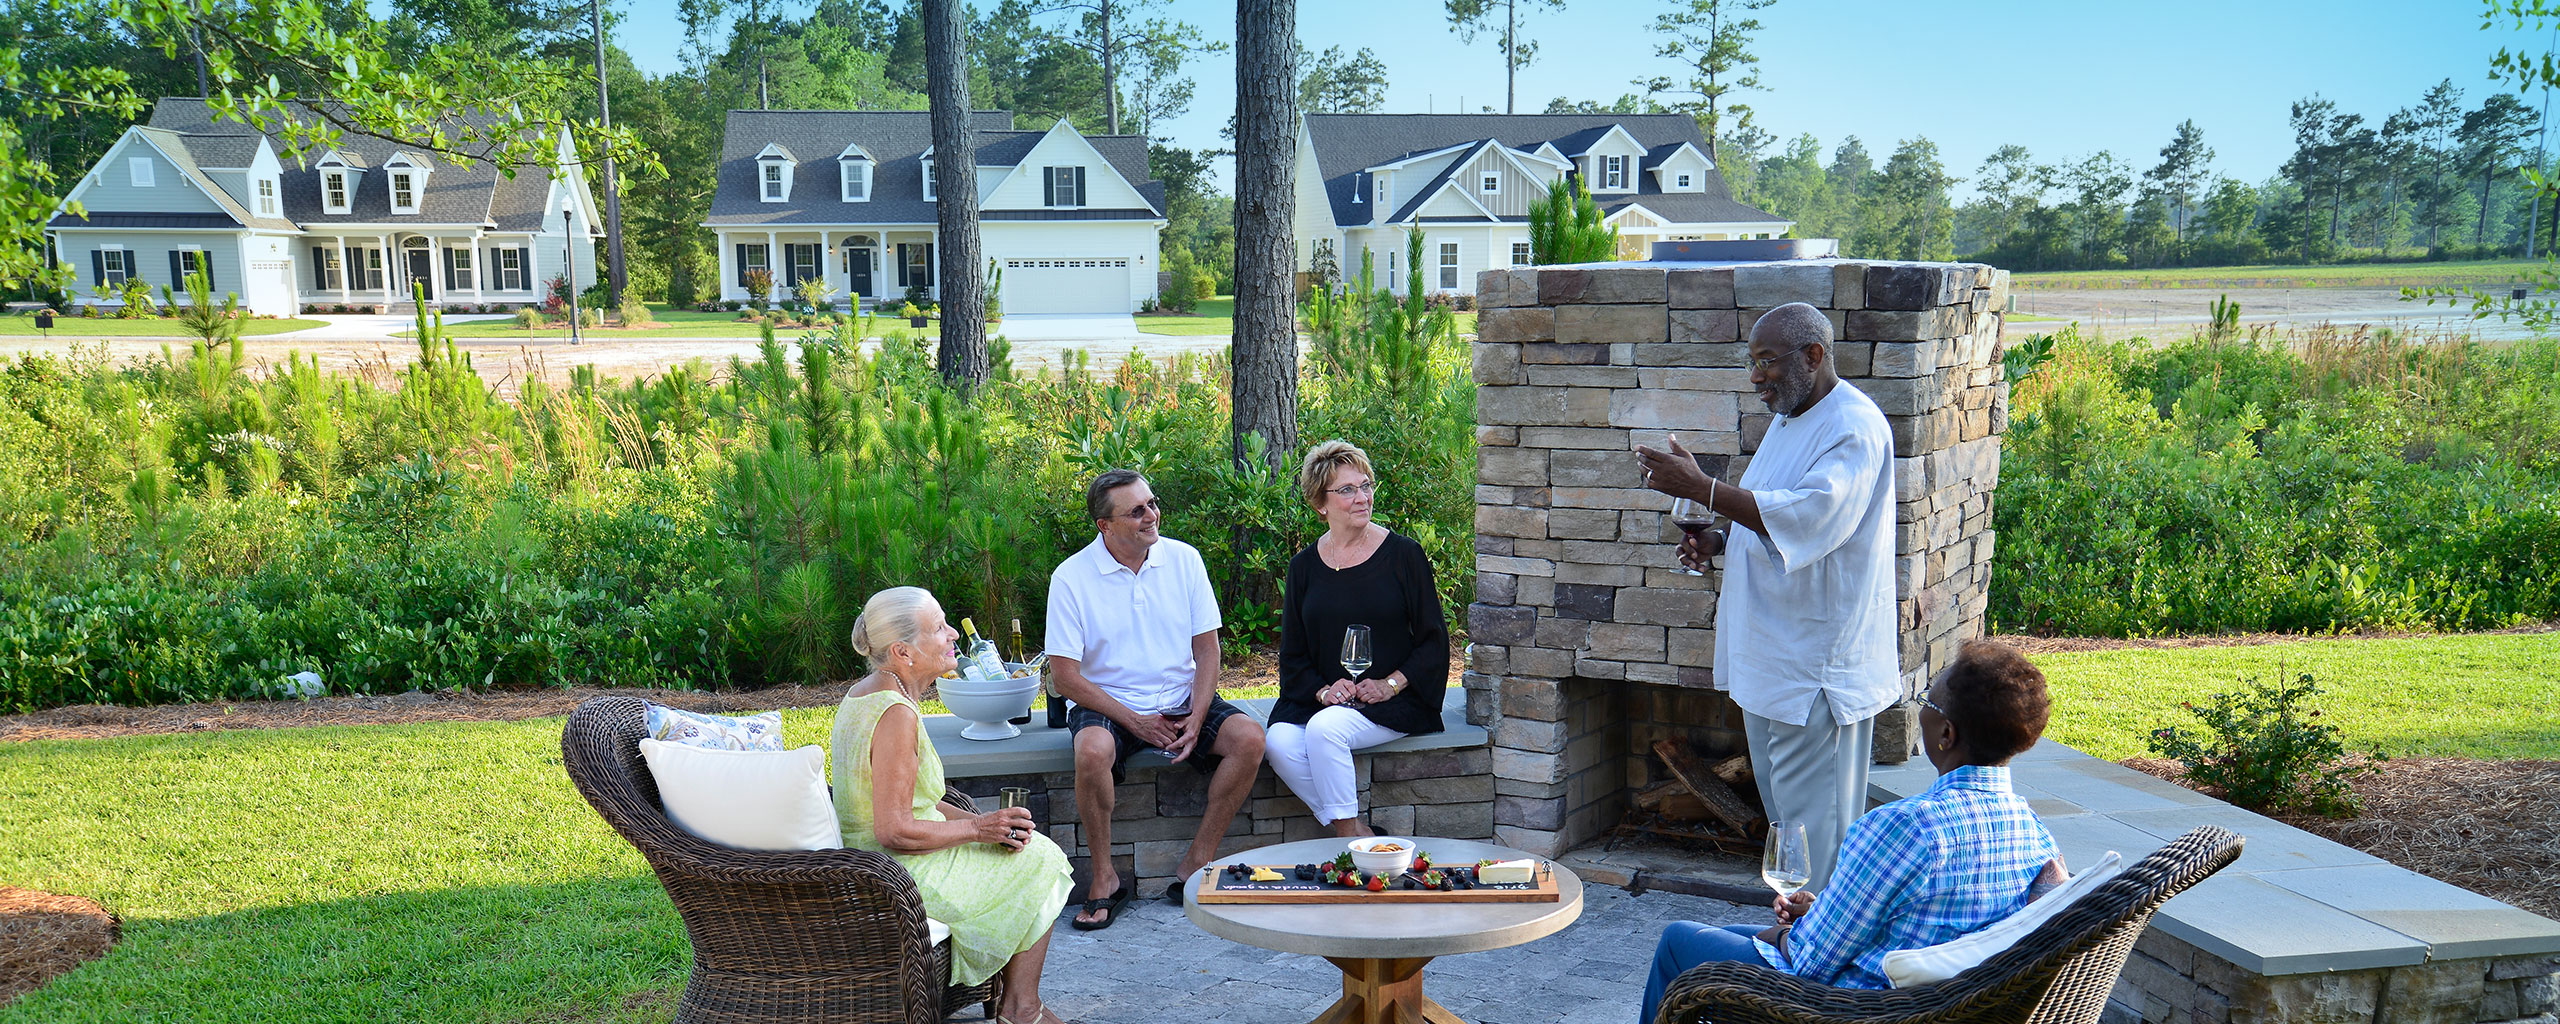 Neighbors having drinks near outside fireplace